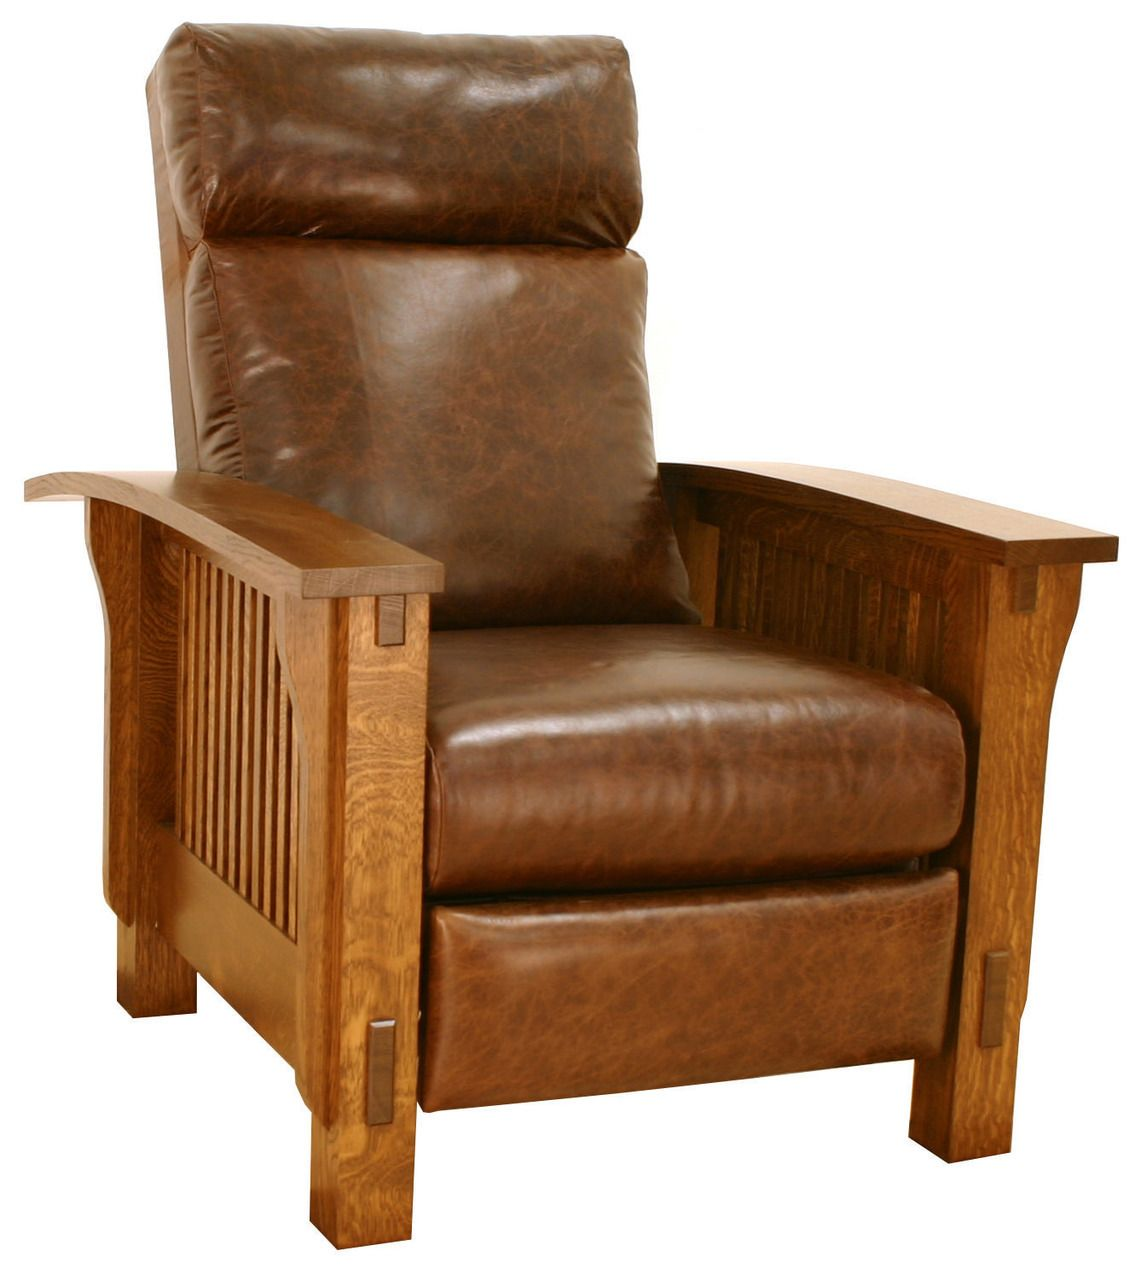 American Craft Furniture In Ontario: American Mission Spindle Morris Recliner 8X-1004-TC